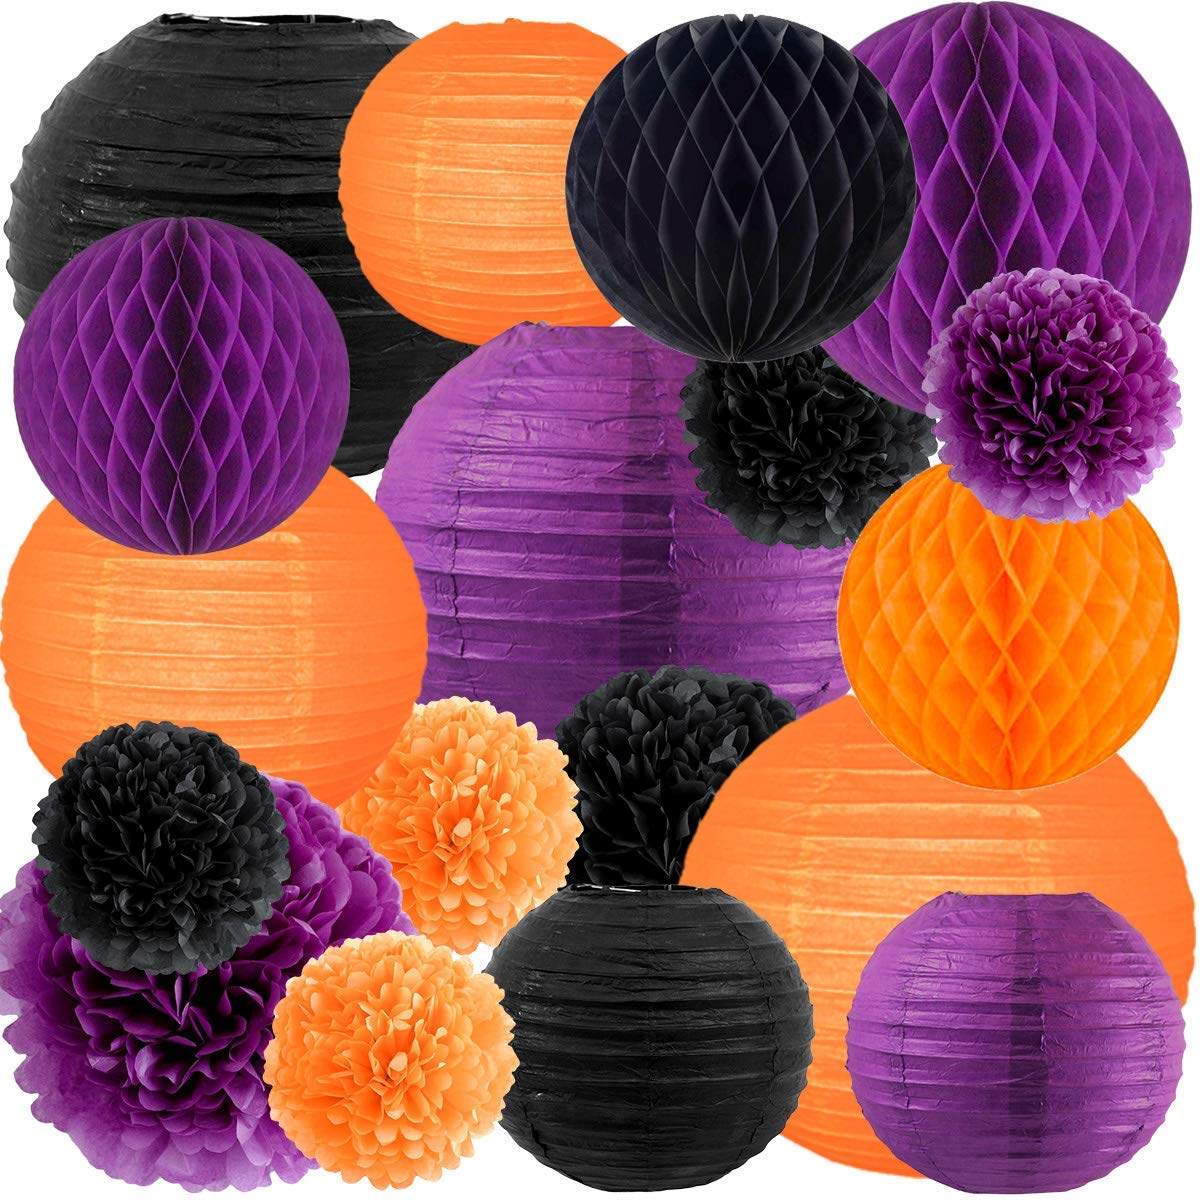 NICROLANDEE Happy Halloween Orange Purple and Black Party Decorations Pack Tissue Paper Pom Poms Ball Hanging Round Paper Lanterns for Home Fall Harvest Thanksgiving Wedding Background Decor